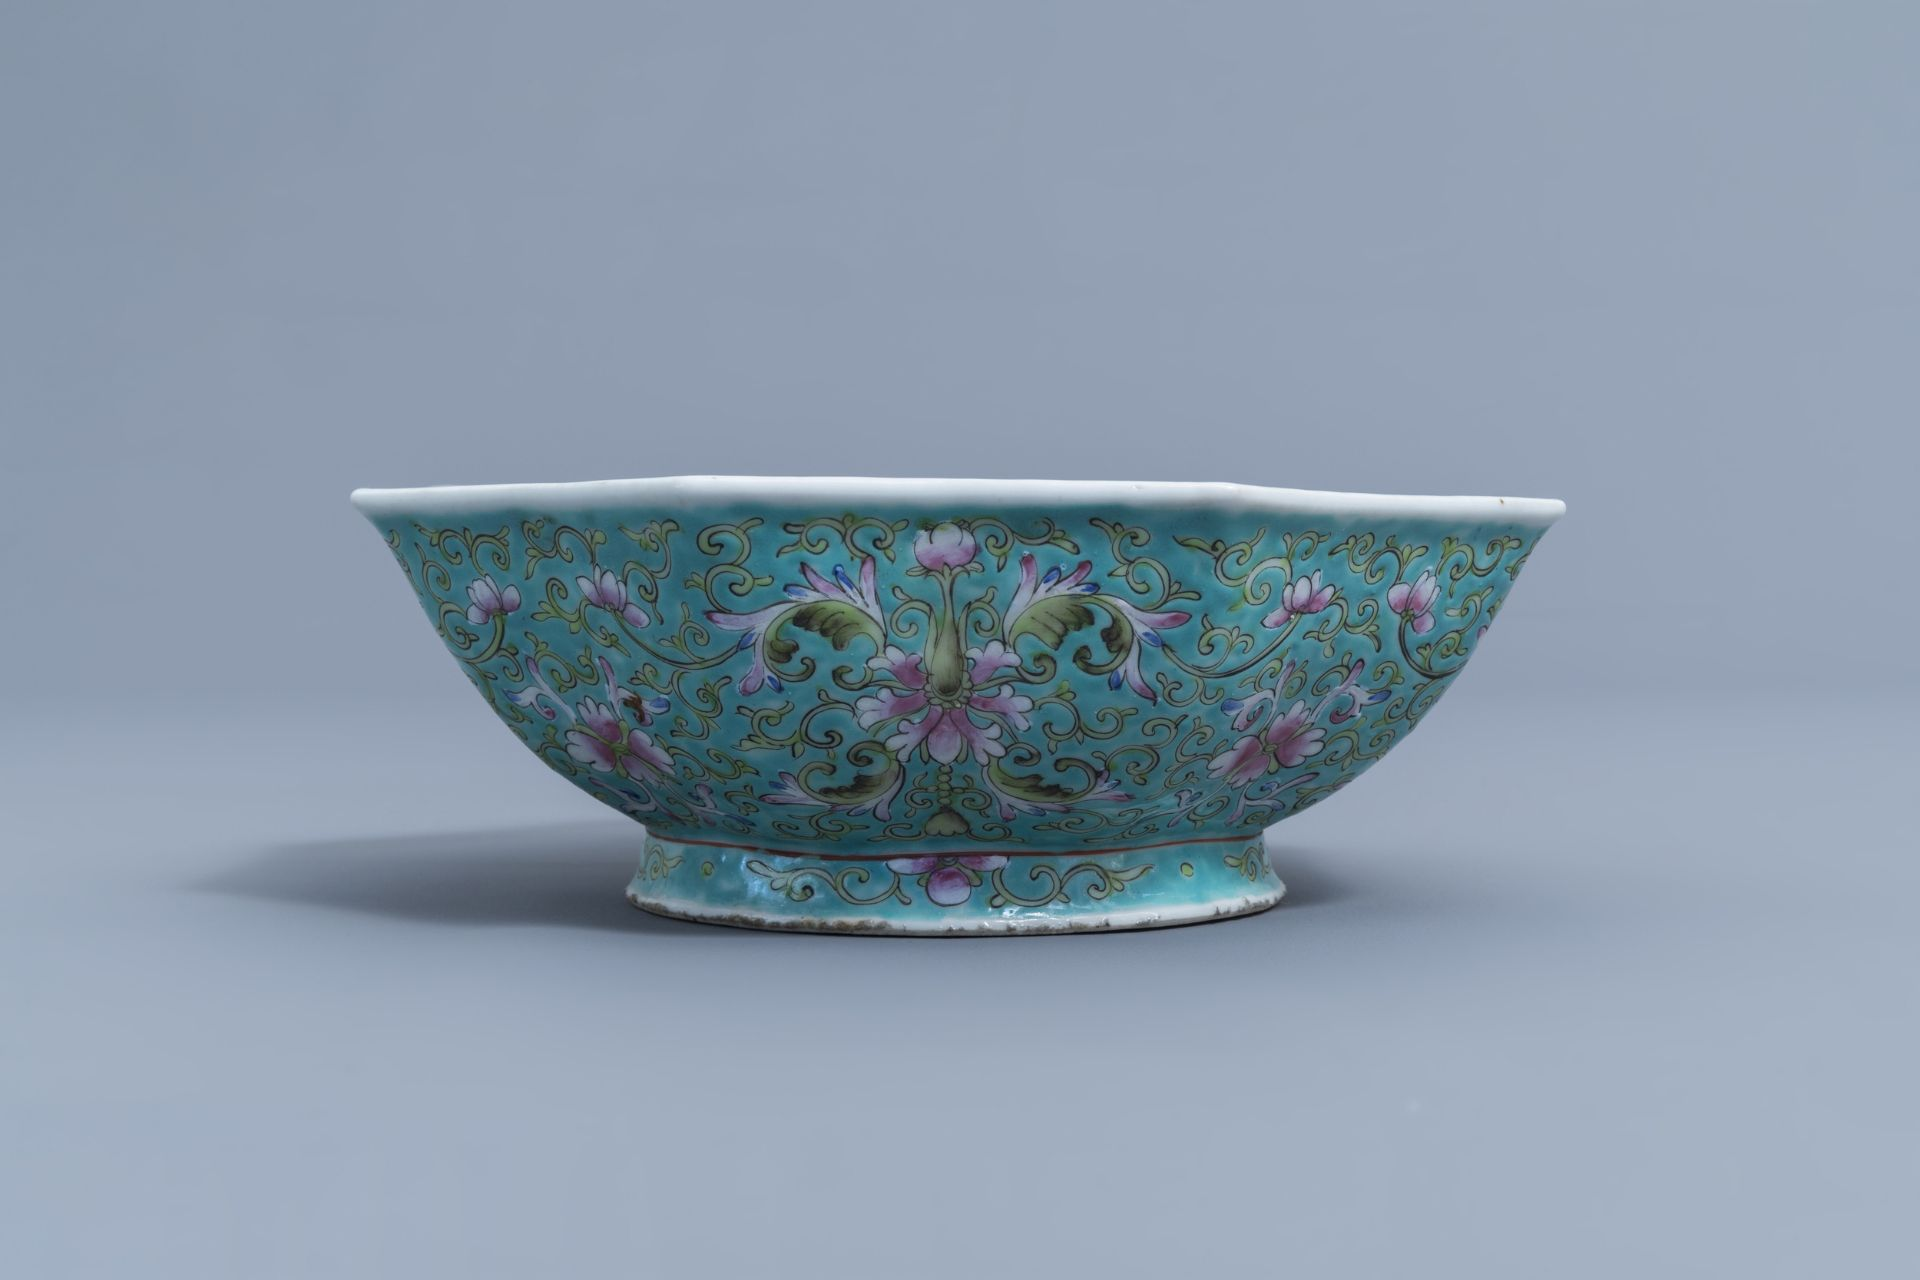 Two Chinese famille rose jardinires and a bowl with floral design, 20th C. - Image 12 of 15